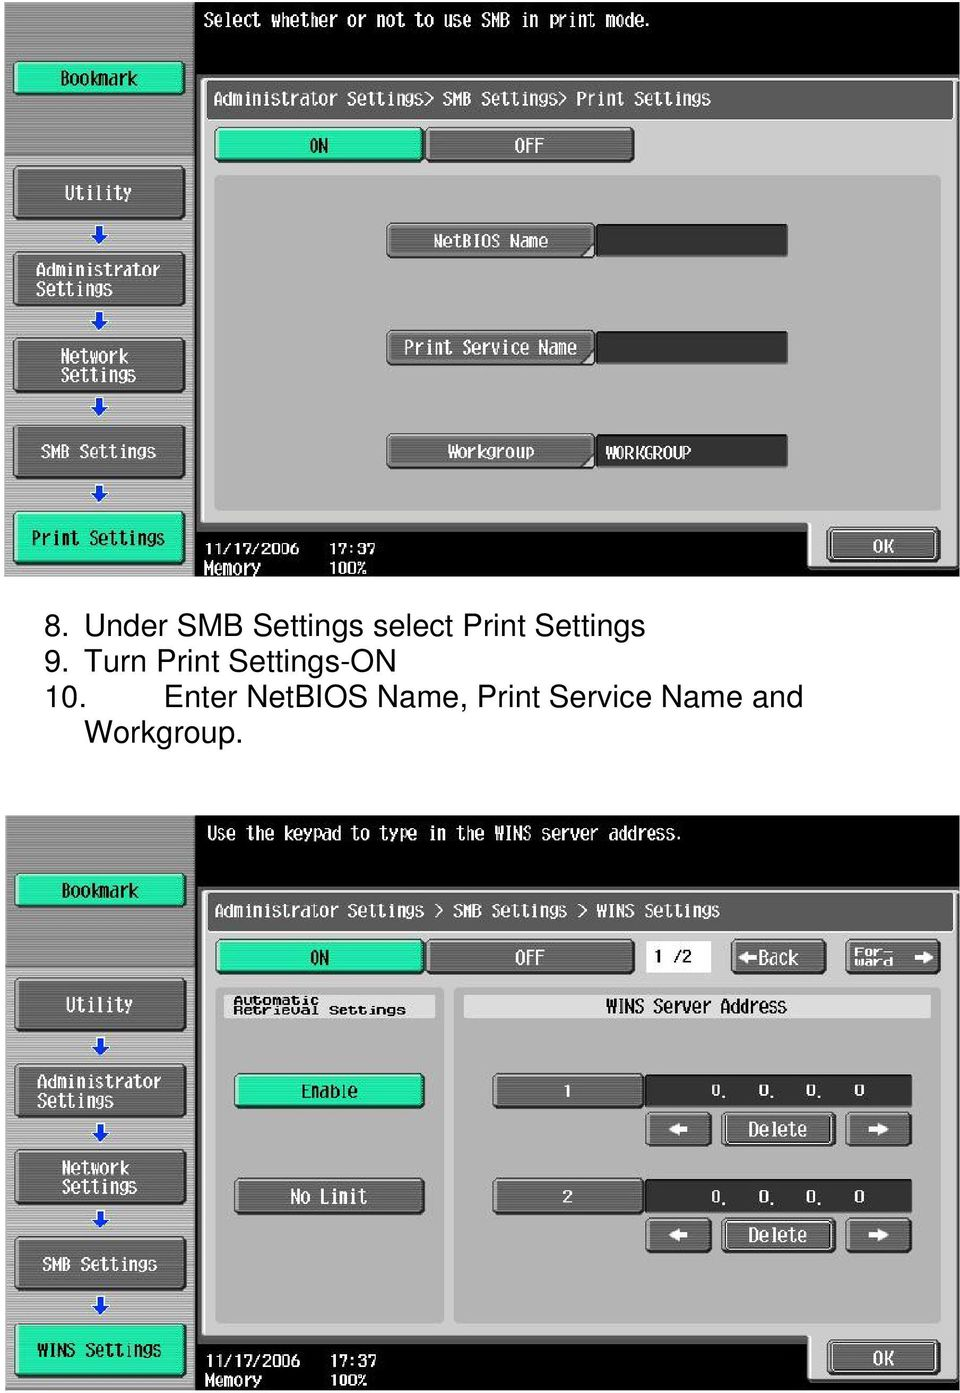 Turn Print Settings-ON 10.